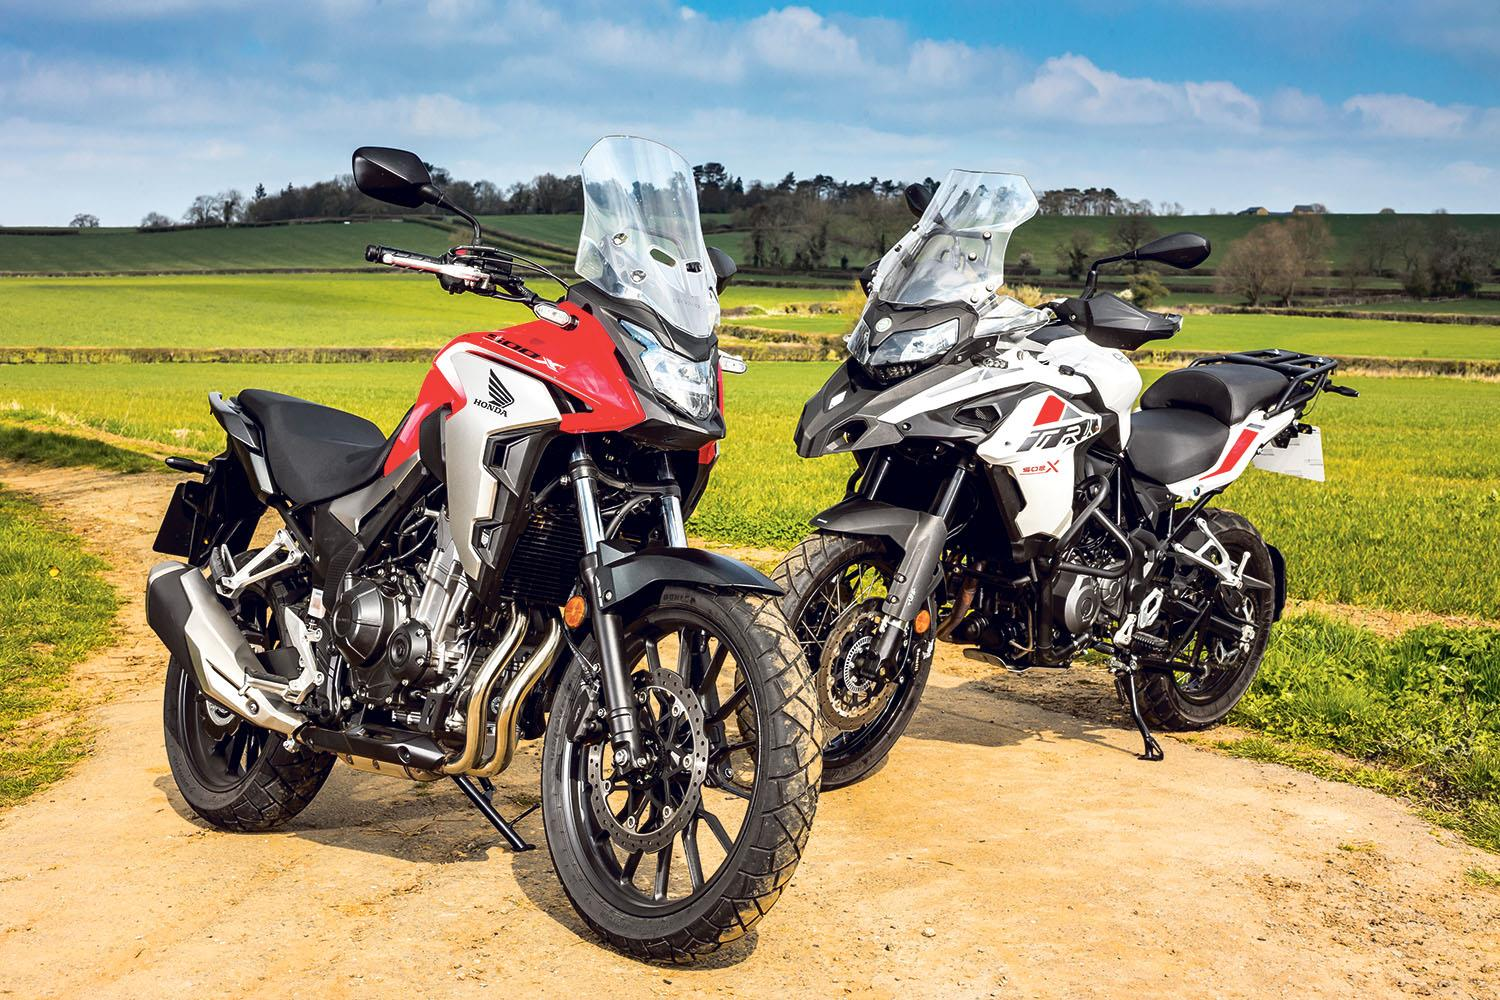 The Benelli impressed us up against the Honda CB500X